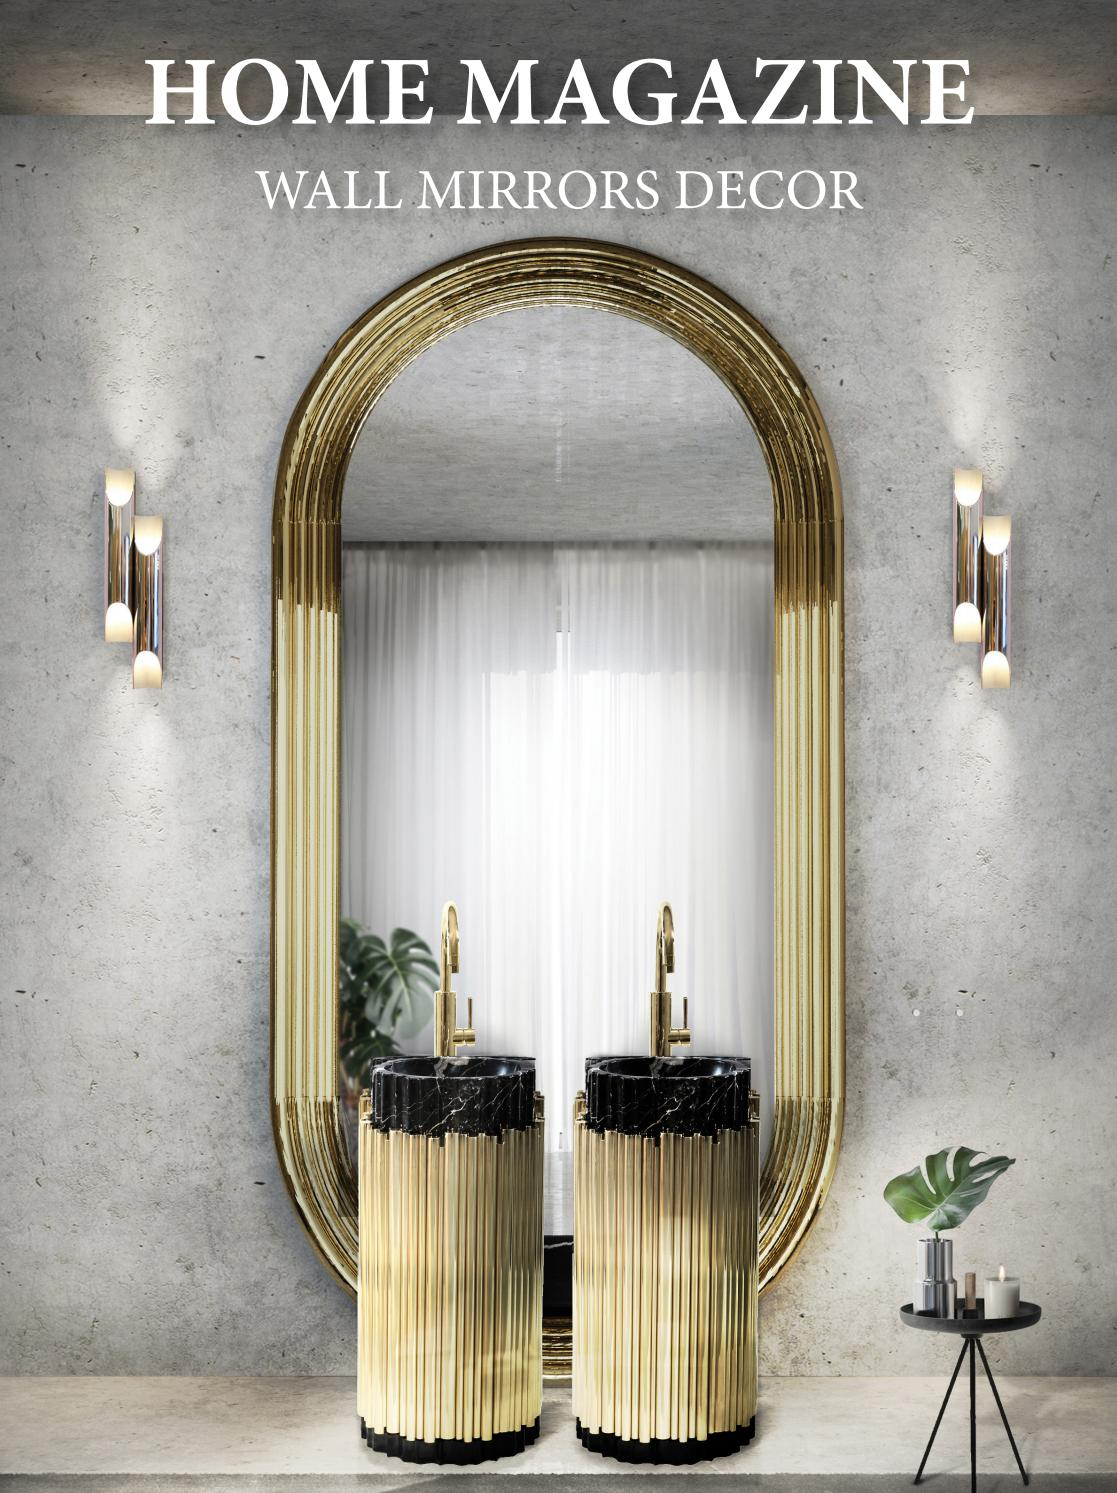 Home Magazine Wall Mirrors Decor By Home Living Magazines Issuu